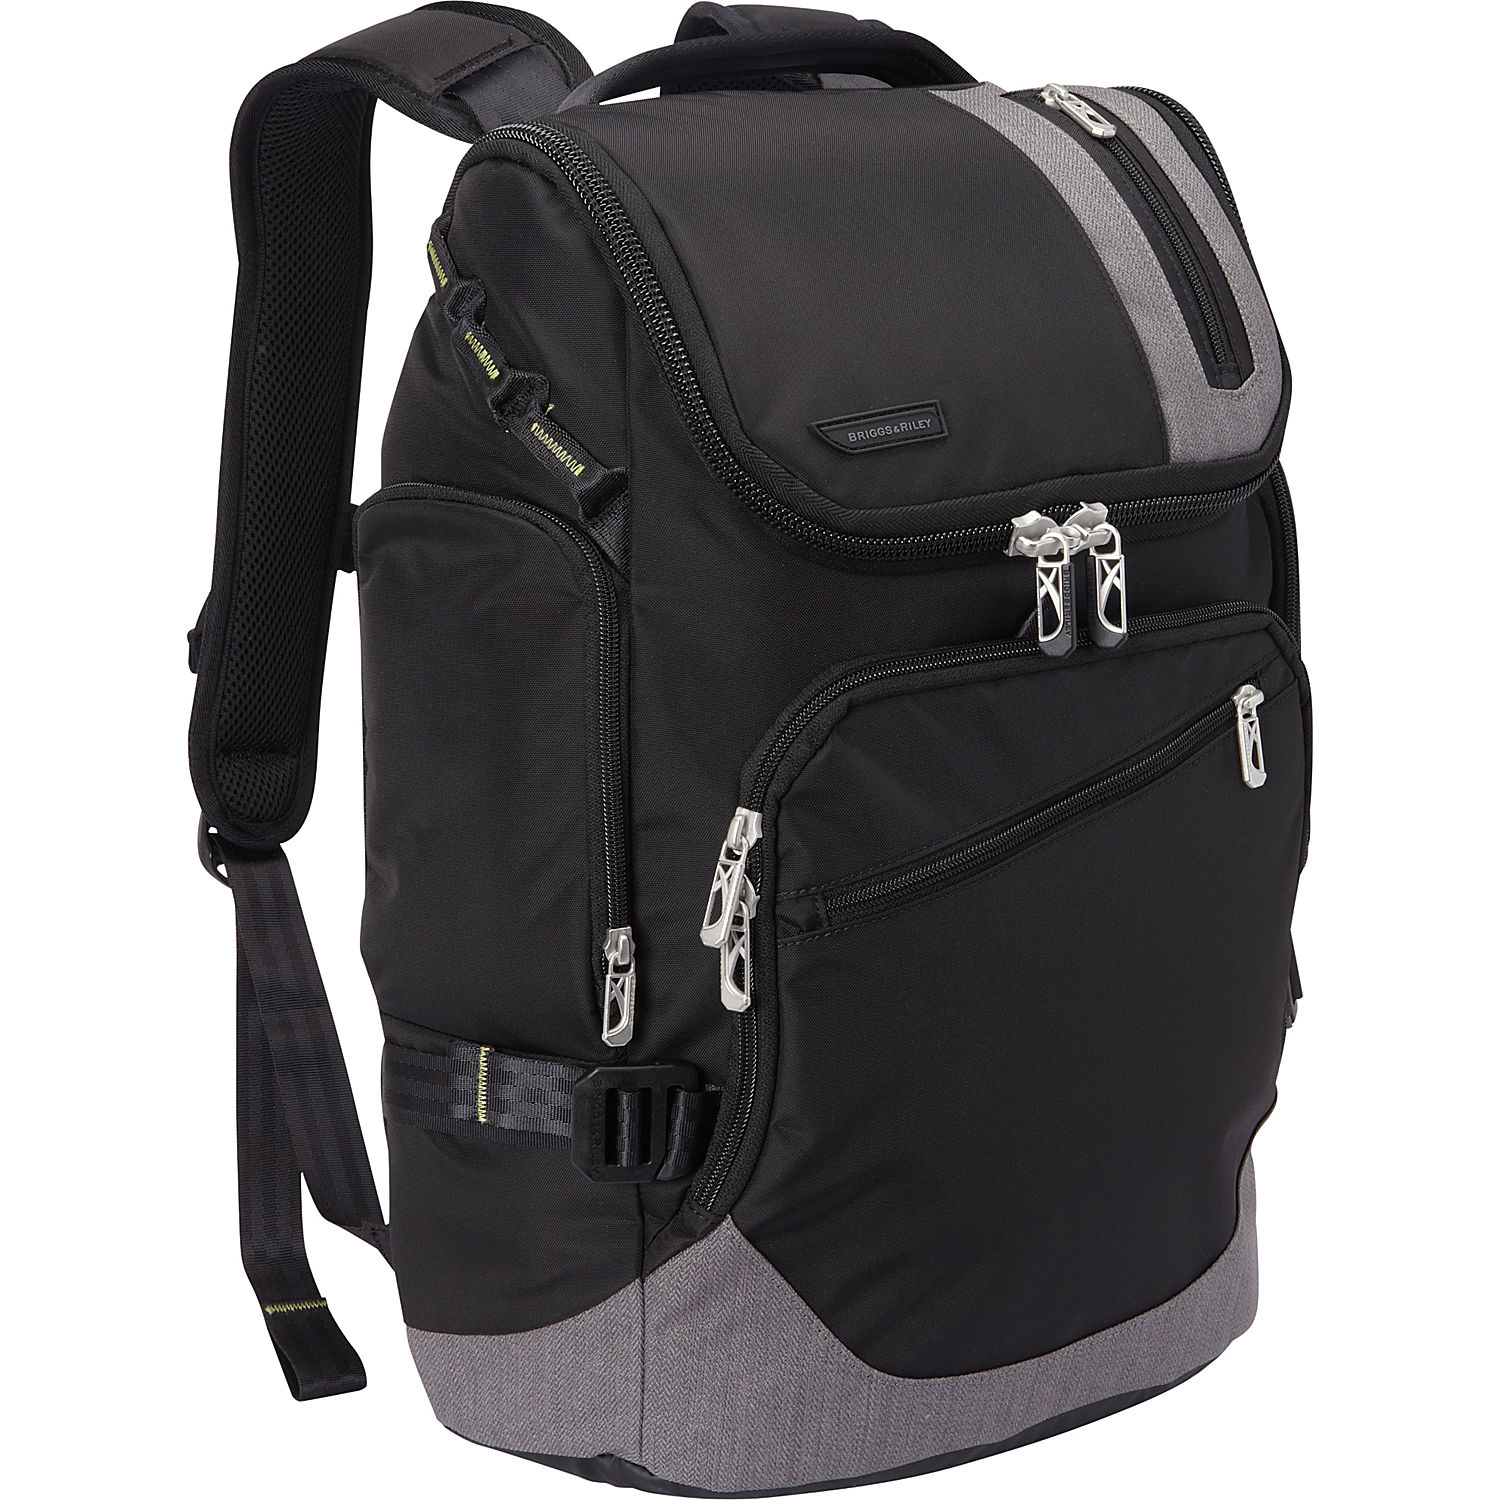 Reviewing Briggs & Riley BRX Excursion Backpack